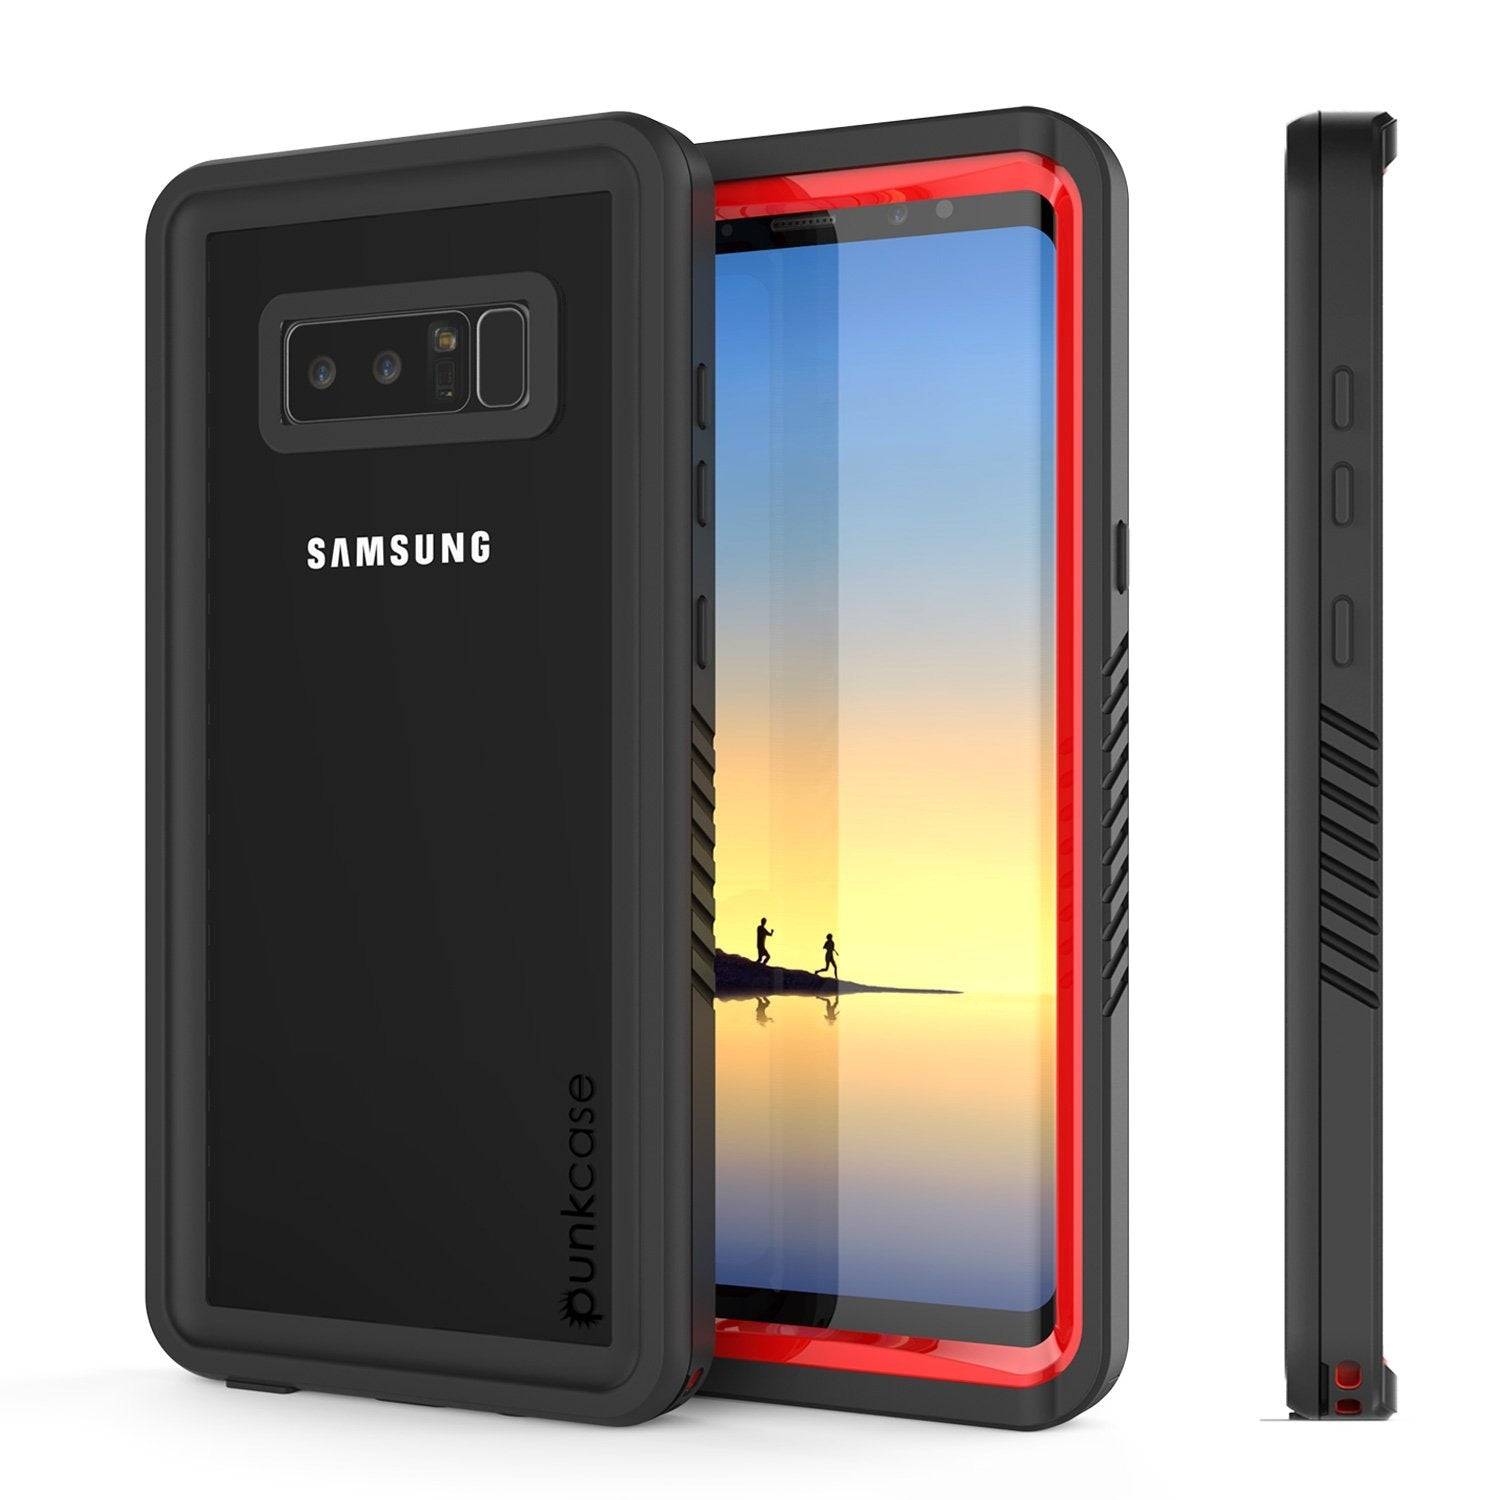 Galaxy Note 8 Case, Punkcase [Extreme Series] [Slim Fit] [IP68 Certified] [Shockproof] Armor Cover W/ Built In Screen Protector [Red]